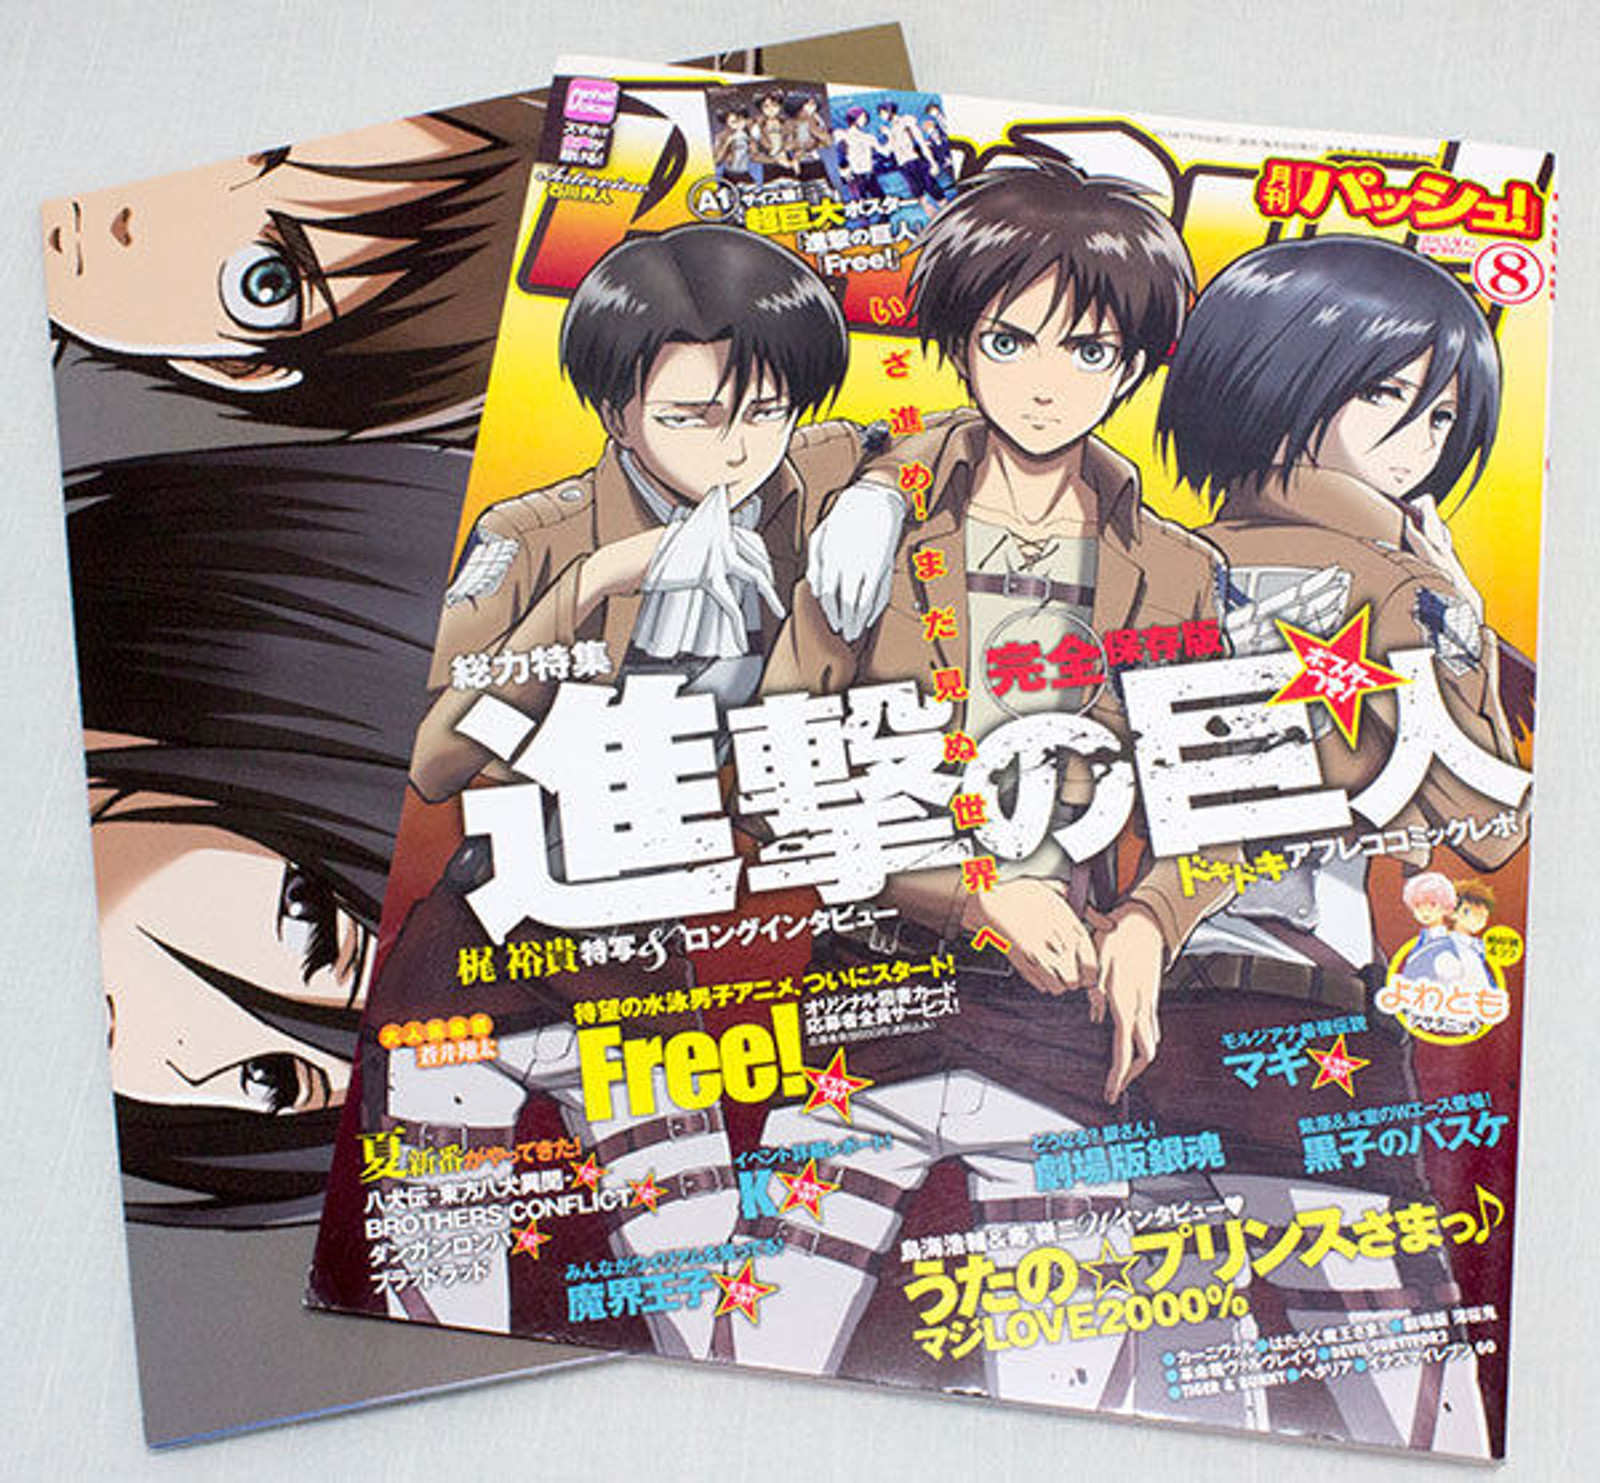 PASH Japan Anime Managzine 08/2013 w/A1 Size Big Poster Free!/Attack on Titans